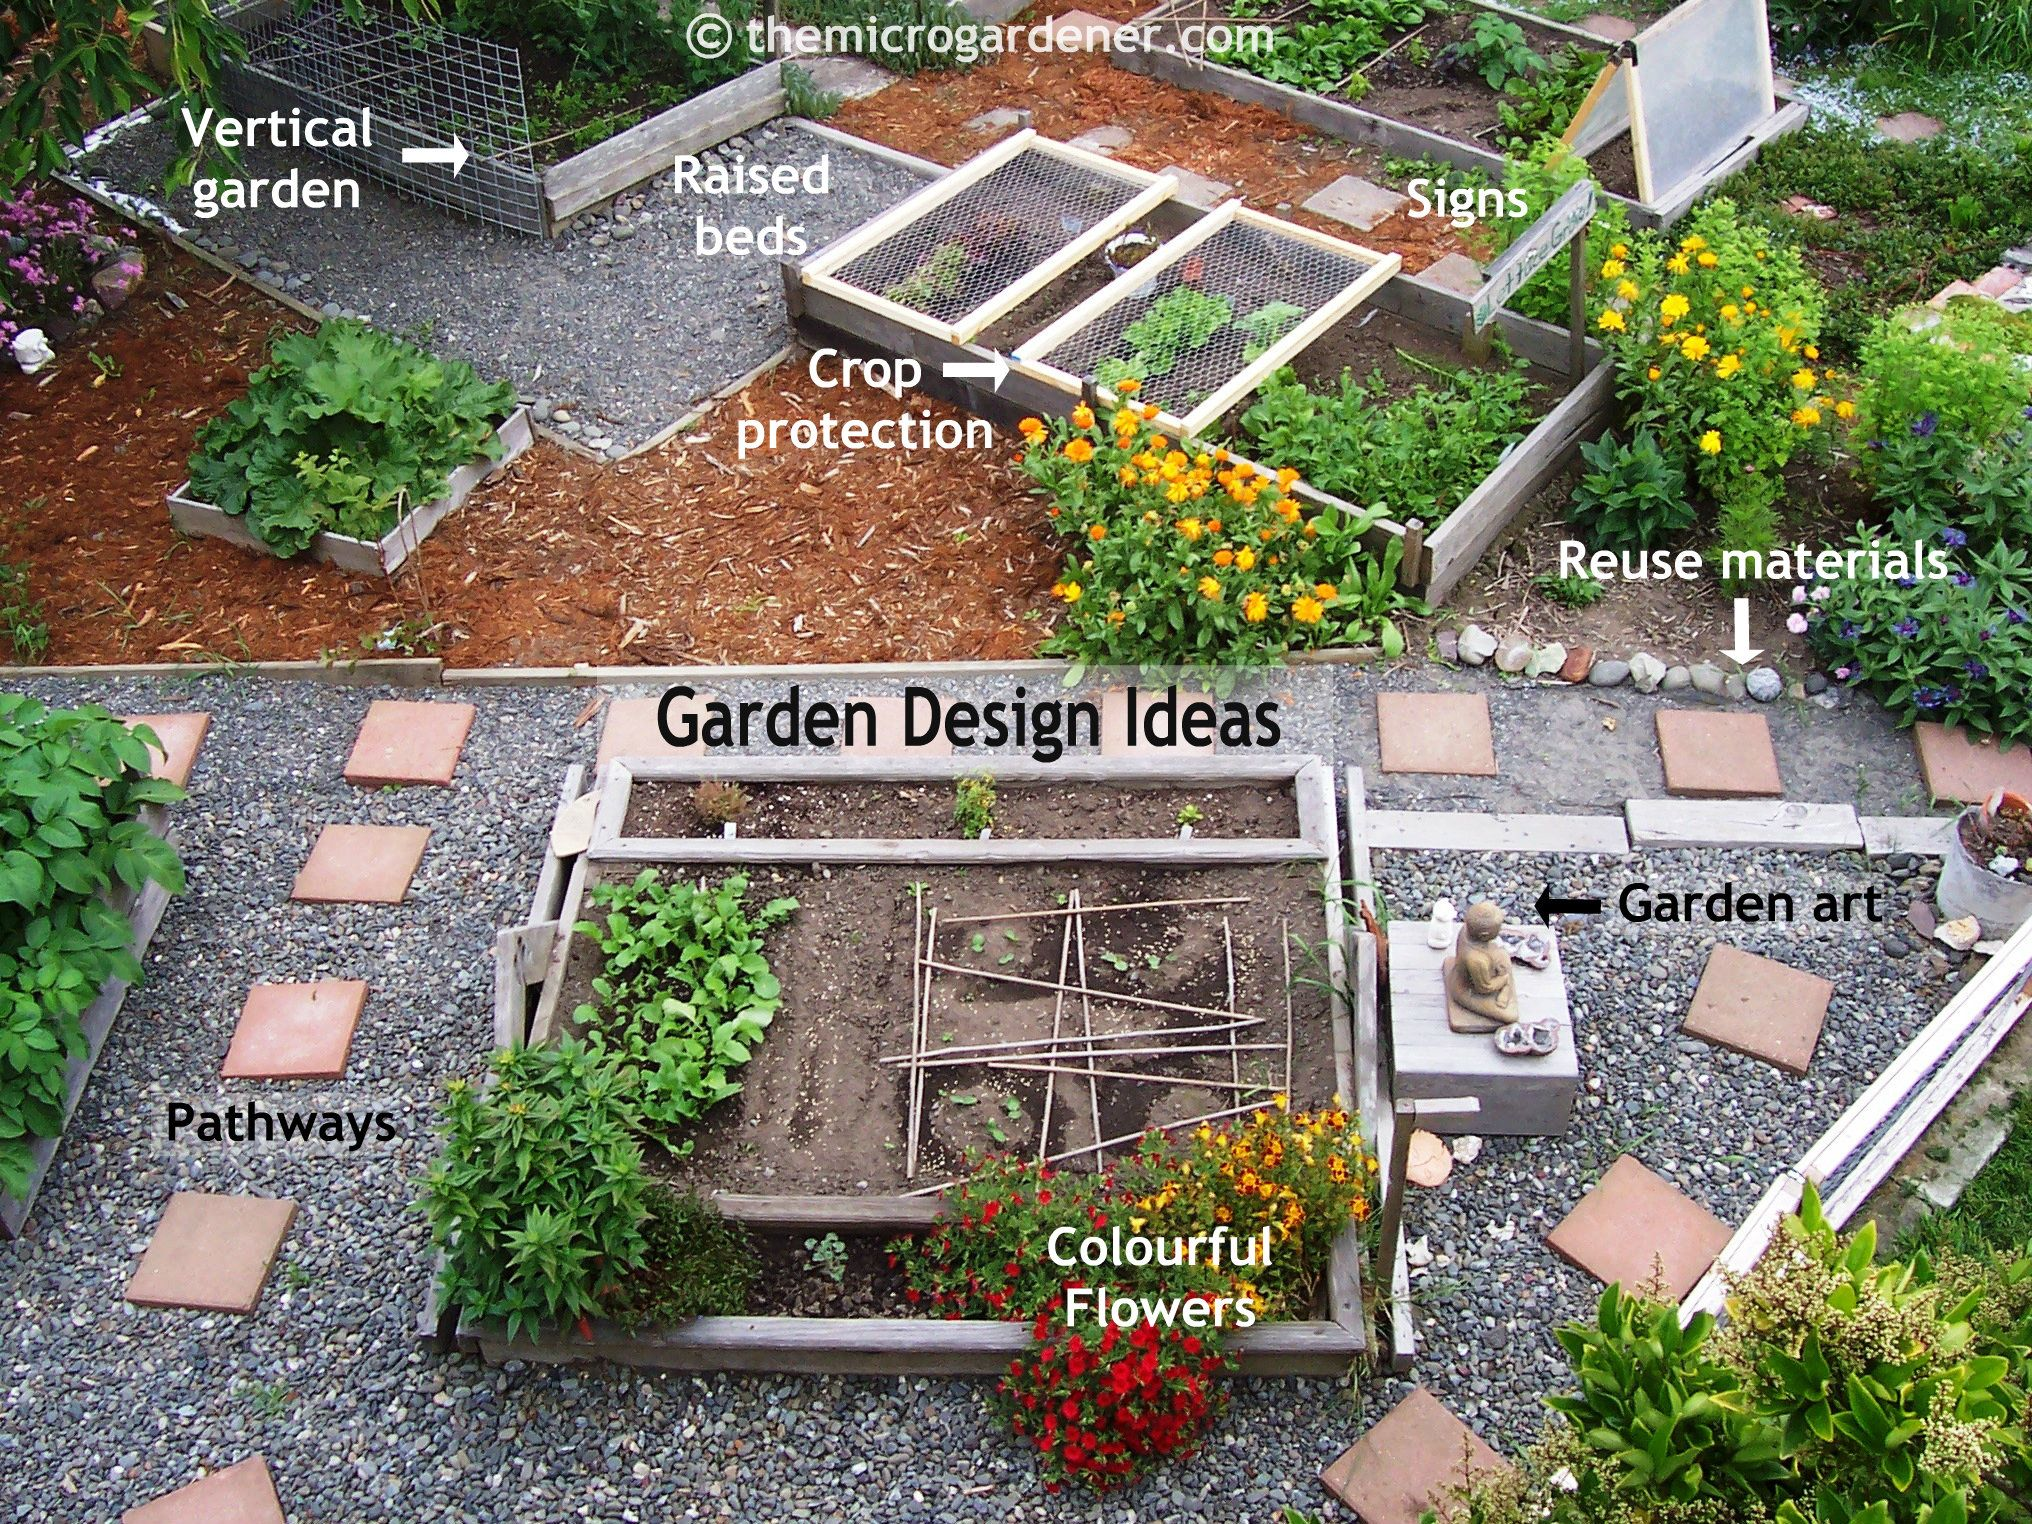 Small garden design ideas on pinterest vertical gardens for Small garden design